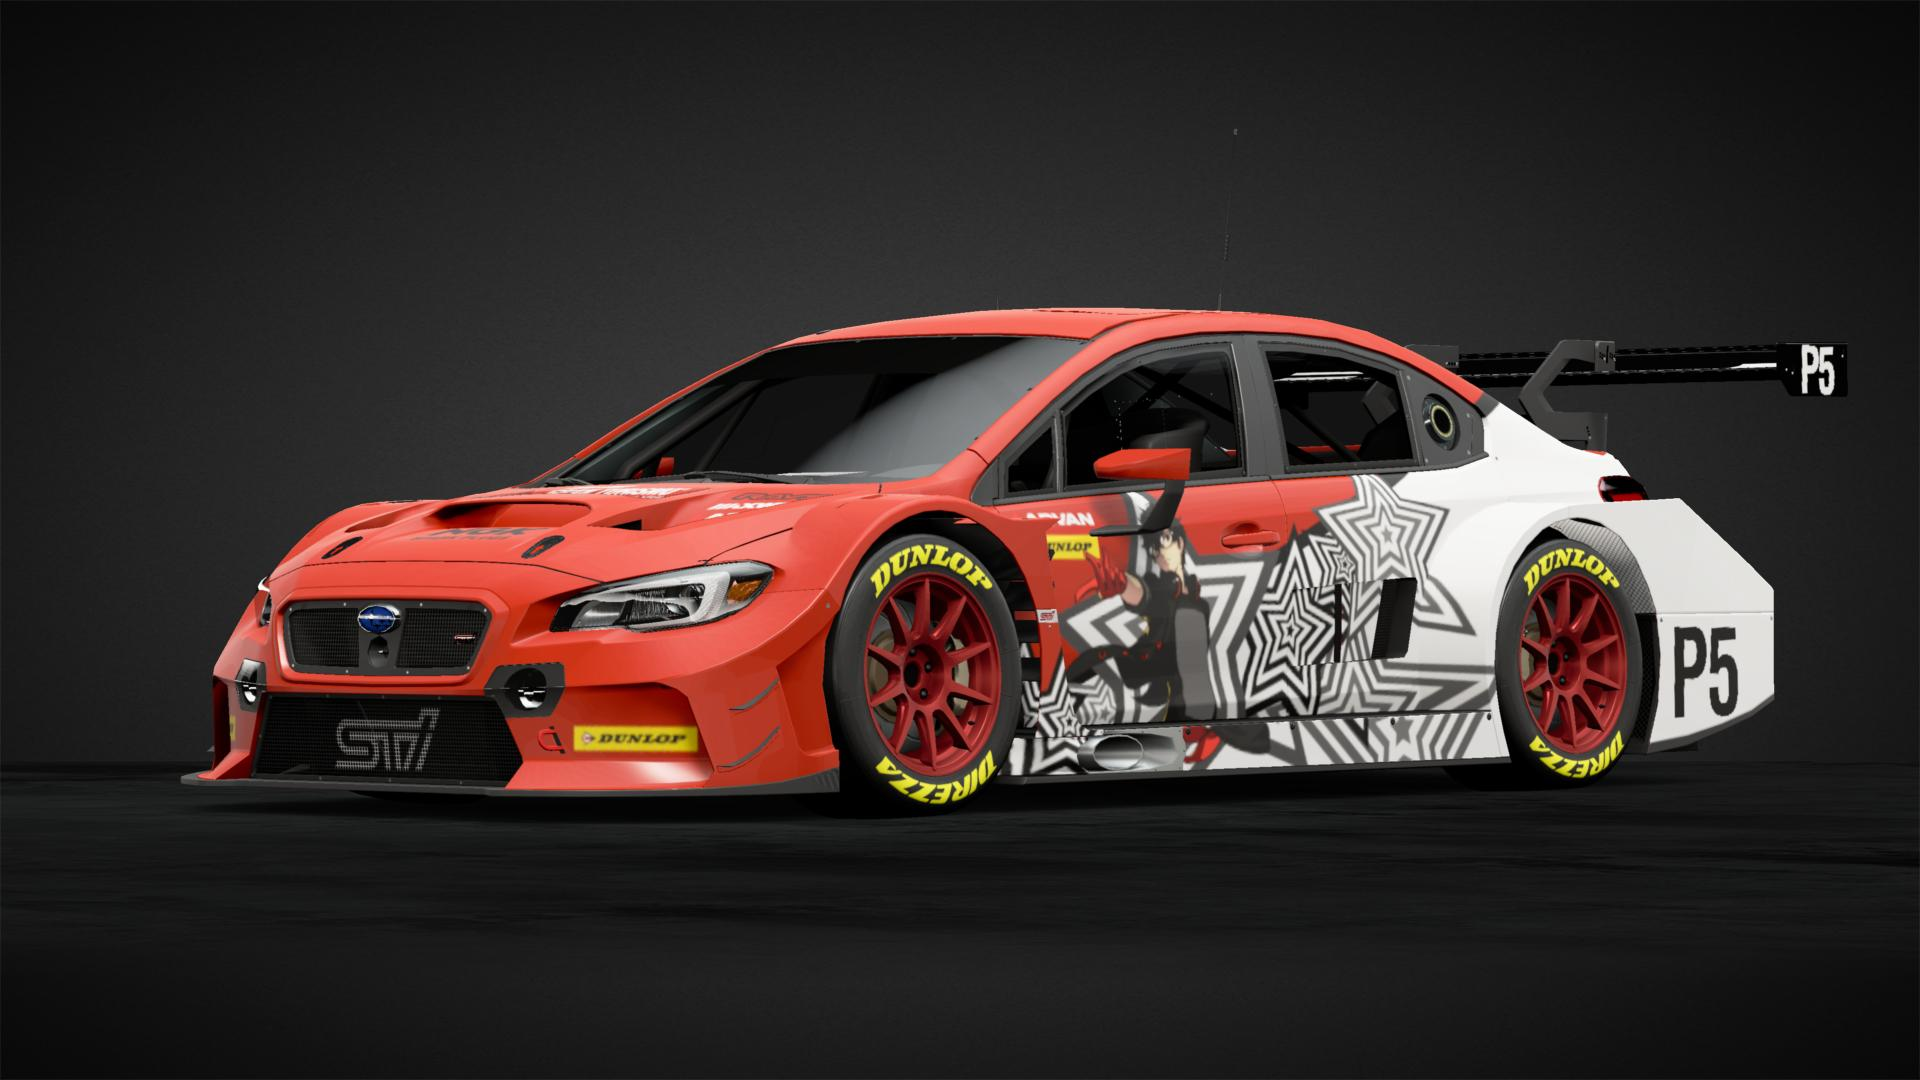 Persona 5 Sti Car Livery By Volumeup98 Community Gran Turismo